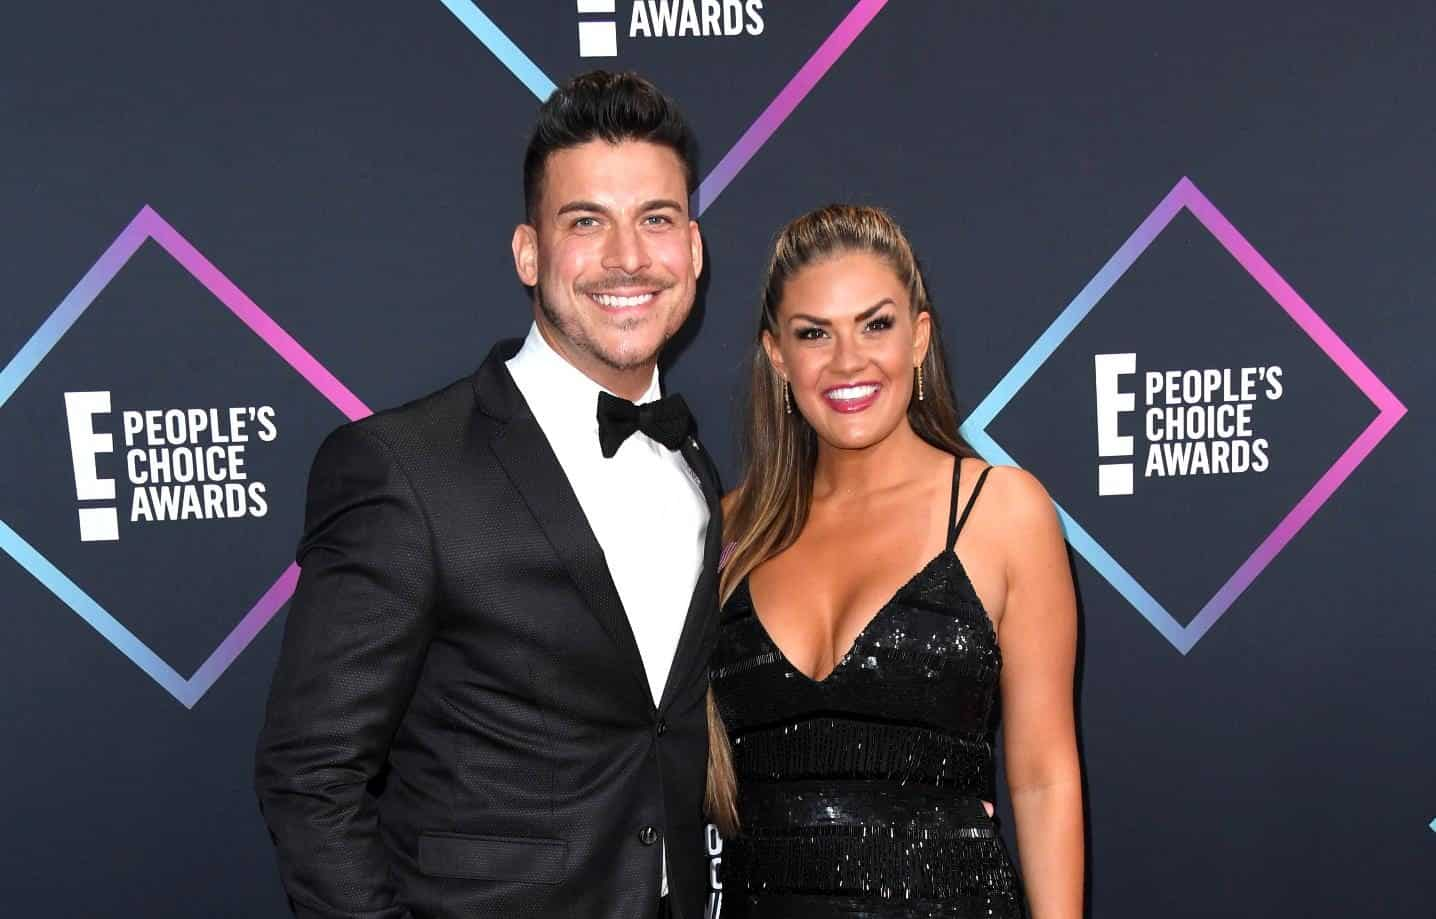 PHOTOS: Vanderpump Rules' Jax Taylor and Brittany Cartwright Get Married! See Their Wedding Pics Plus Find Out Who Attended